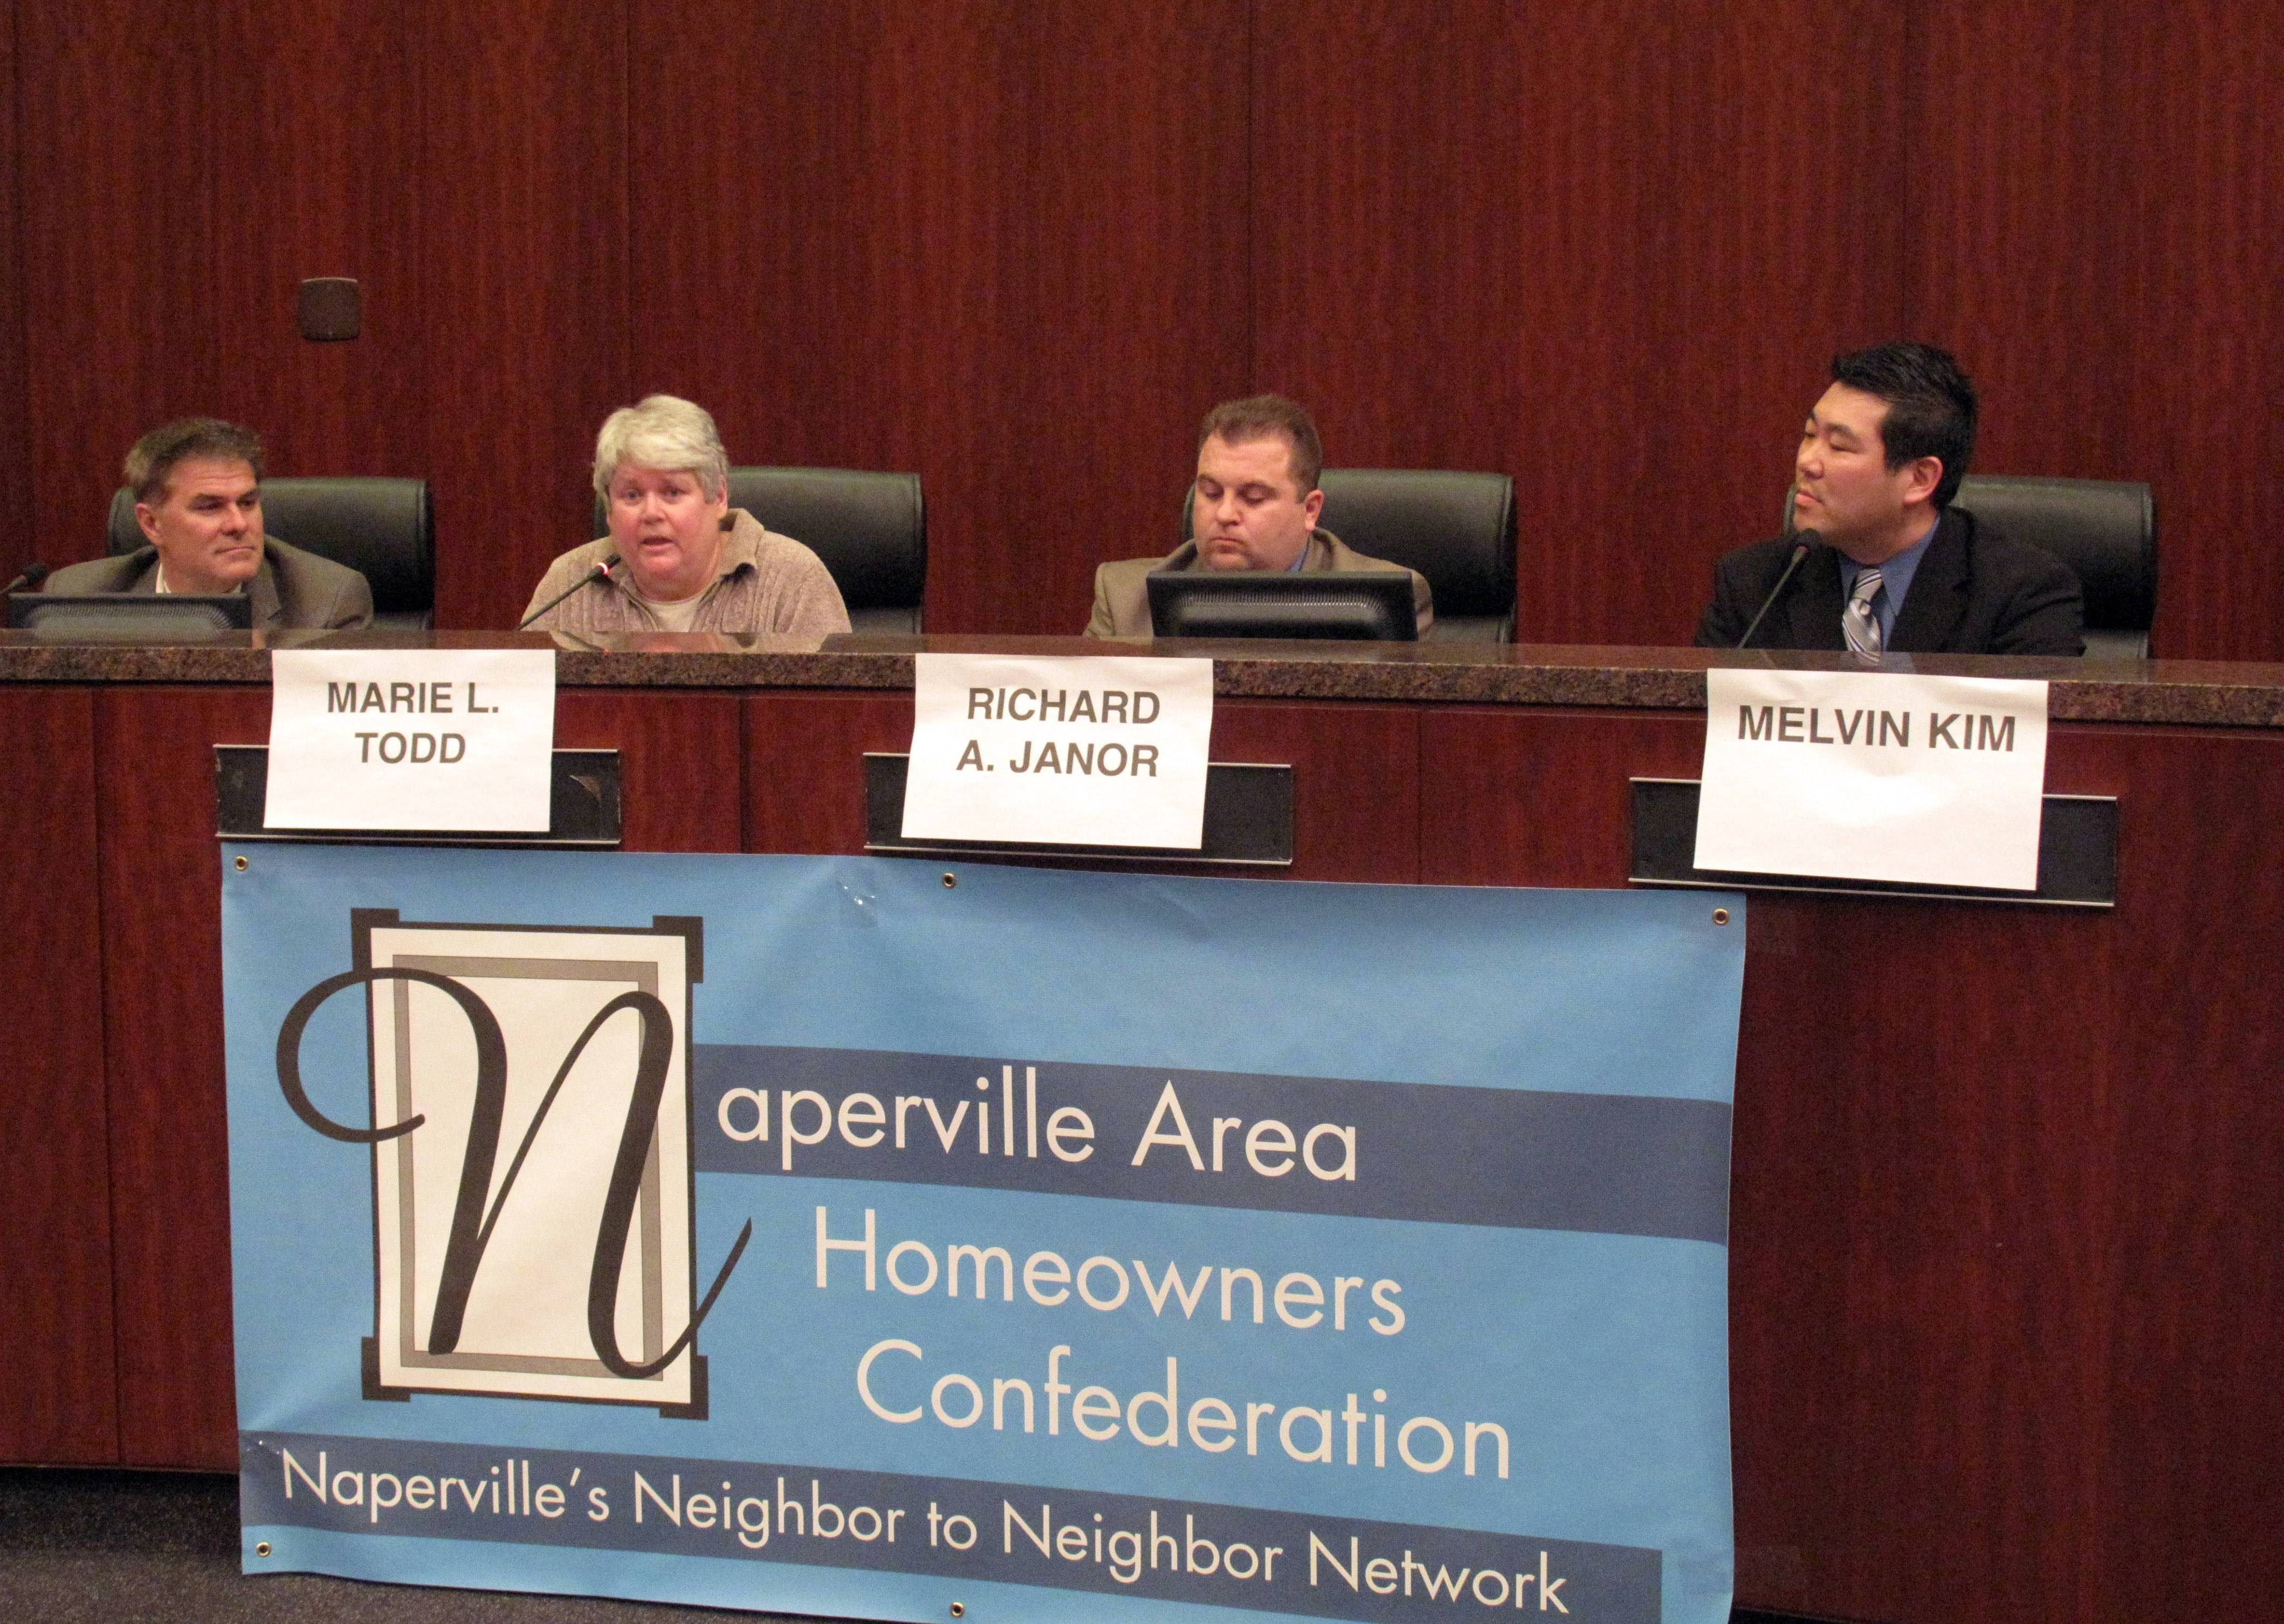 Naperville park board candidate Marie Todd, second from left, says the district should continue increasing property taxes by the maximum amount allowed to afford new construction. Candidates Jim Ensign, Rich Janor and Melvin Kim, all of whom are seeking three seats on the board, disagreed with Todd during a forum sponsored by the Naperville Area Homeowners Confederation.